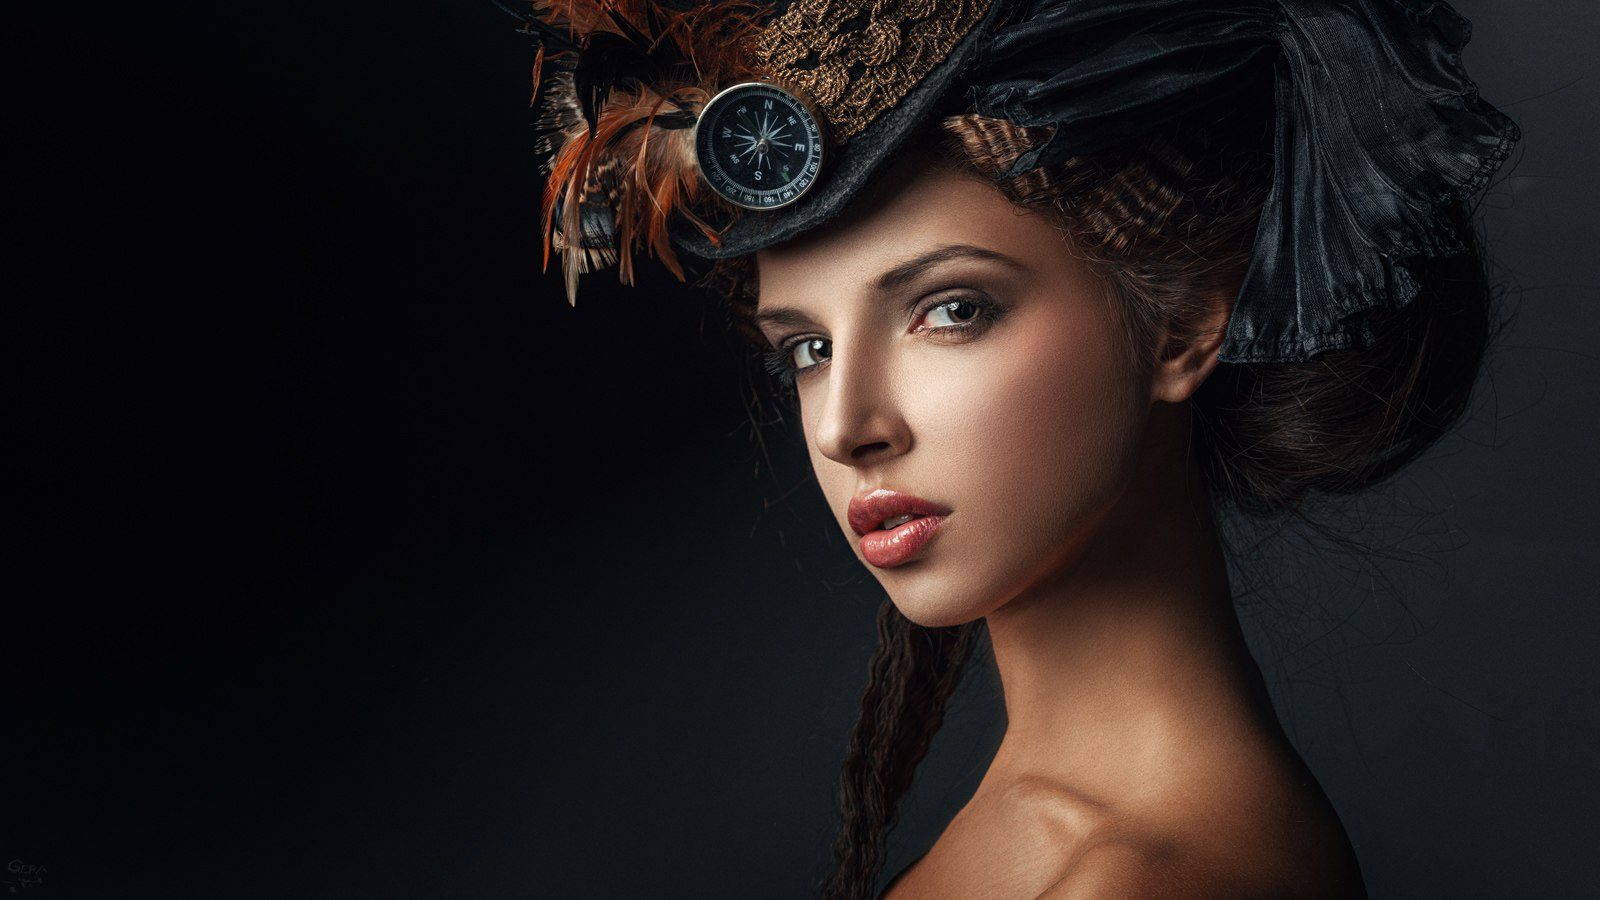 People 1600x900 indoors women model studio face simple background Georgy Chernyadyev looking at viewer portrait makeup steampunk steampunk girl compass